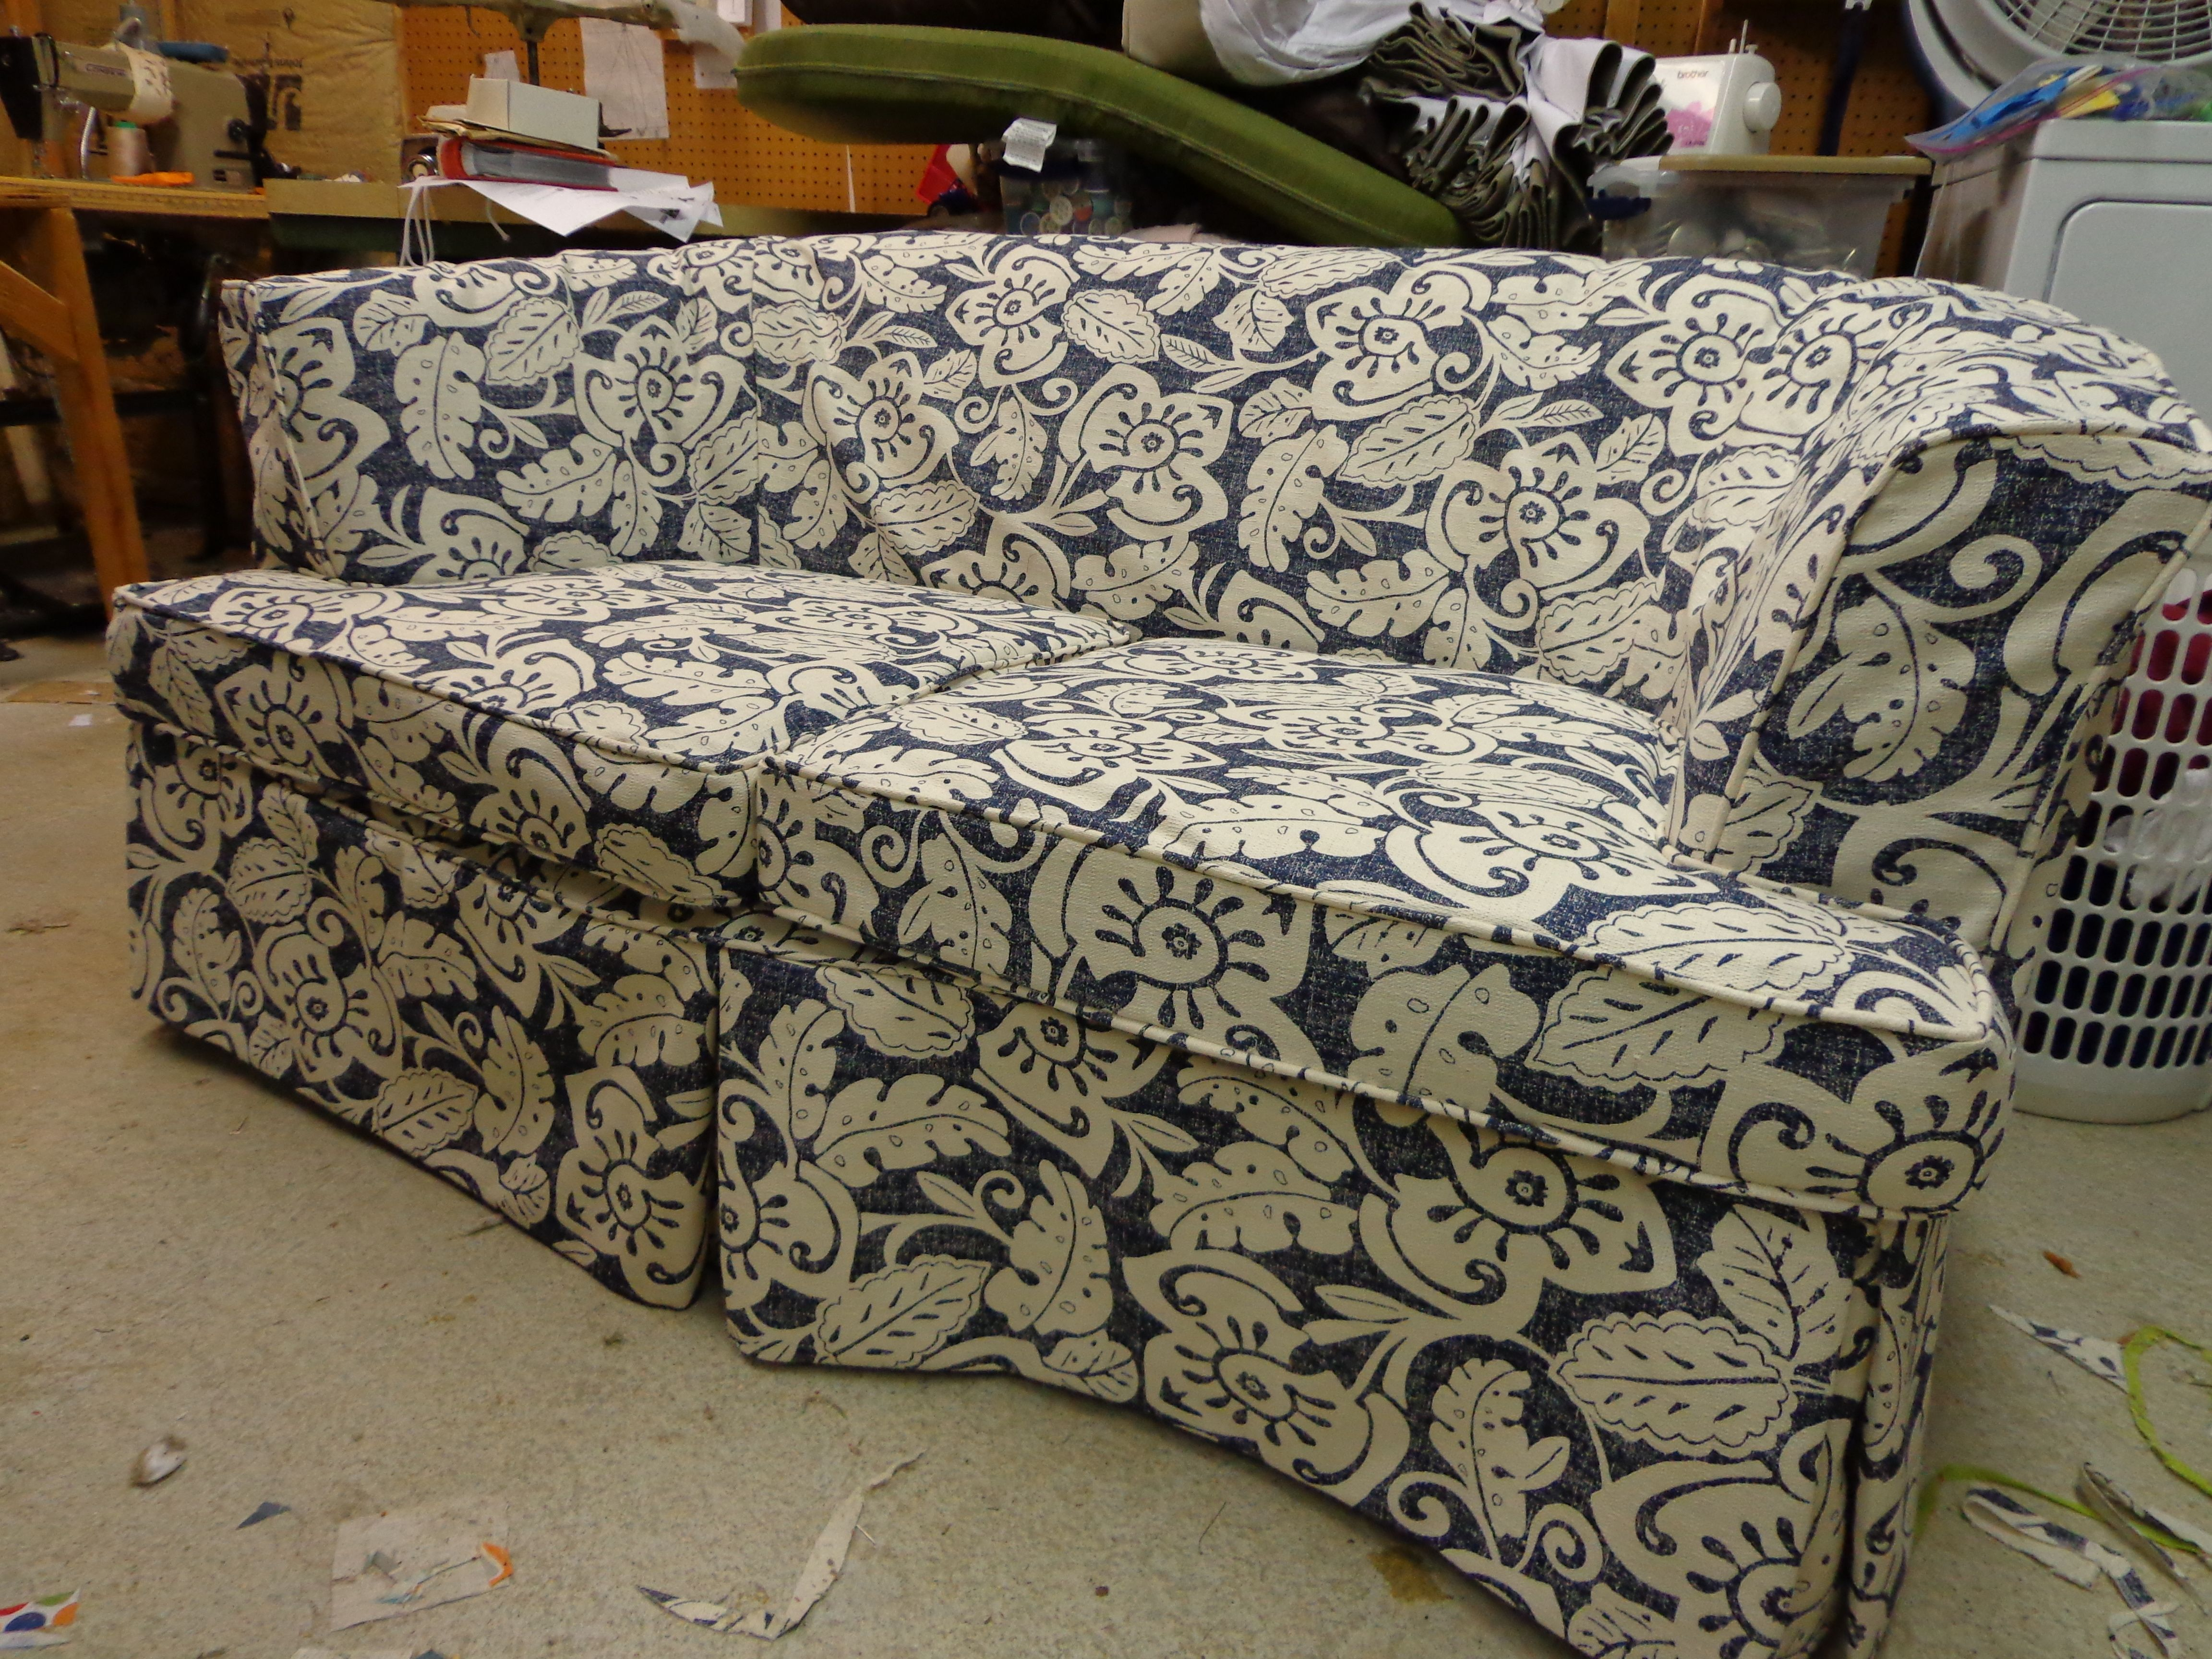 Slipcover For An Old Style Curved Back, Round Couch Slipcovers